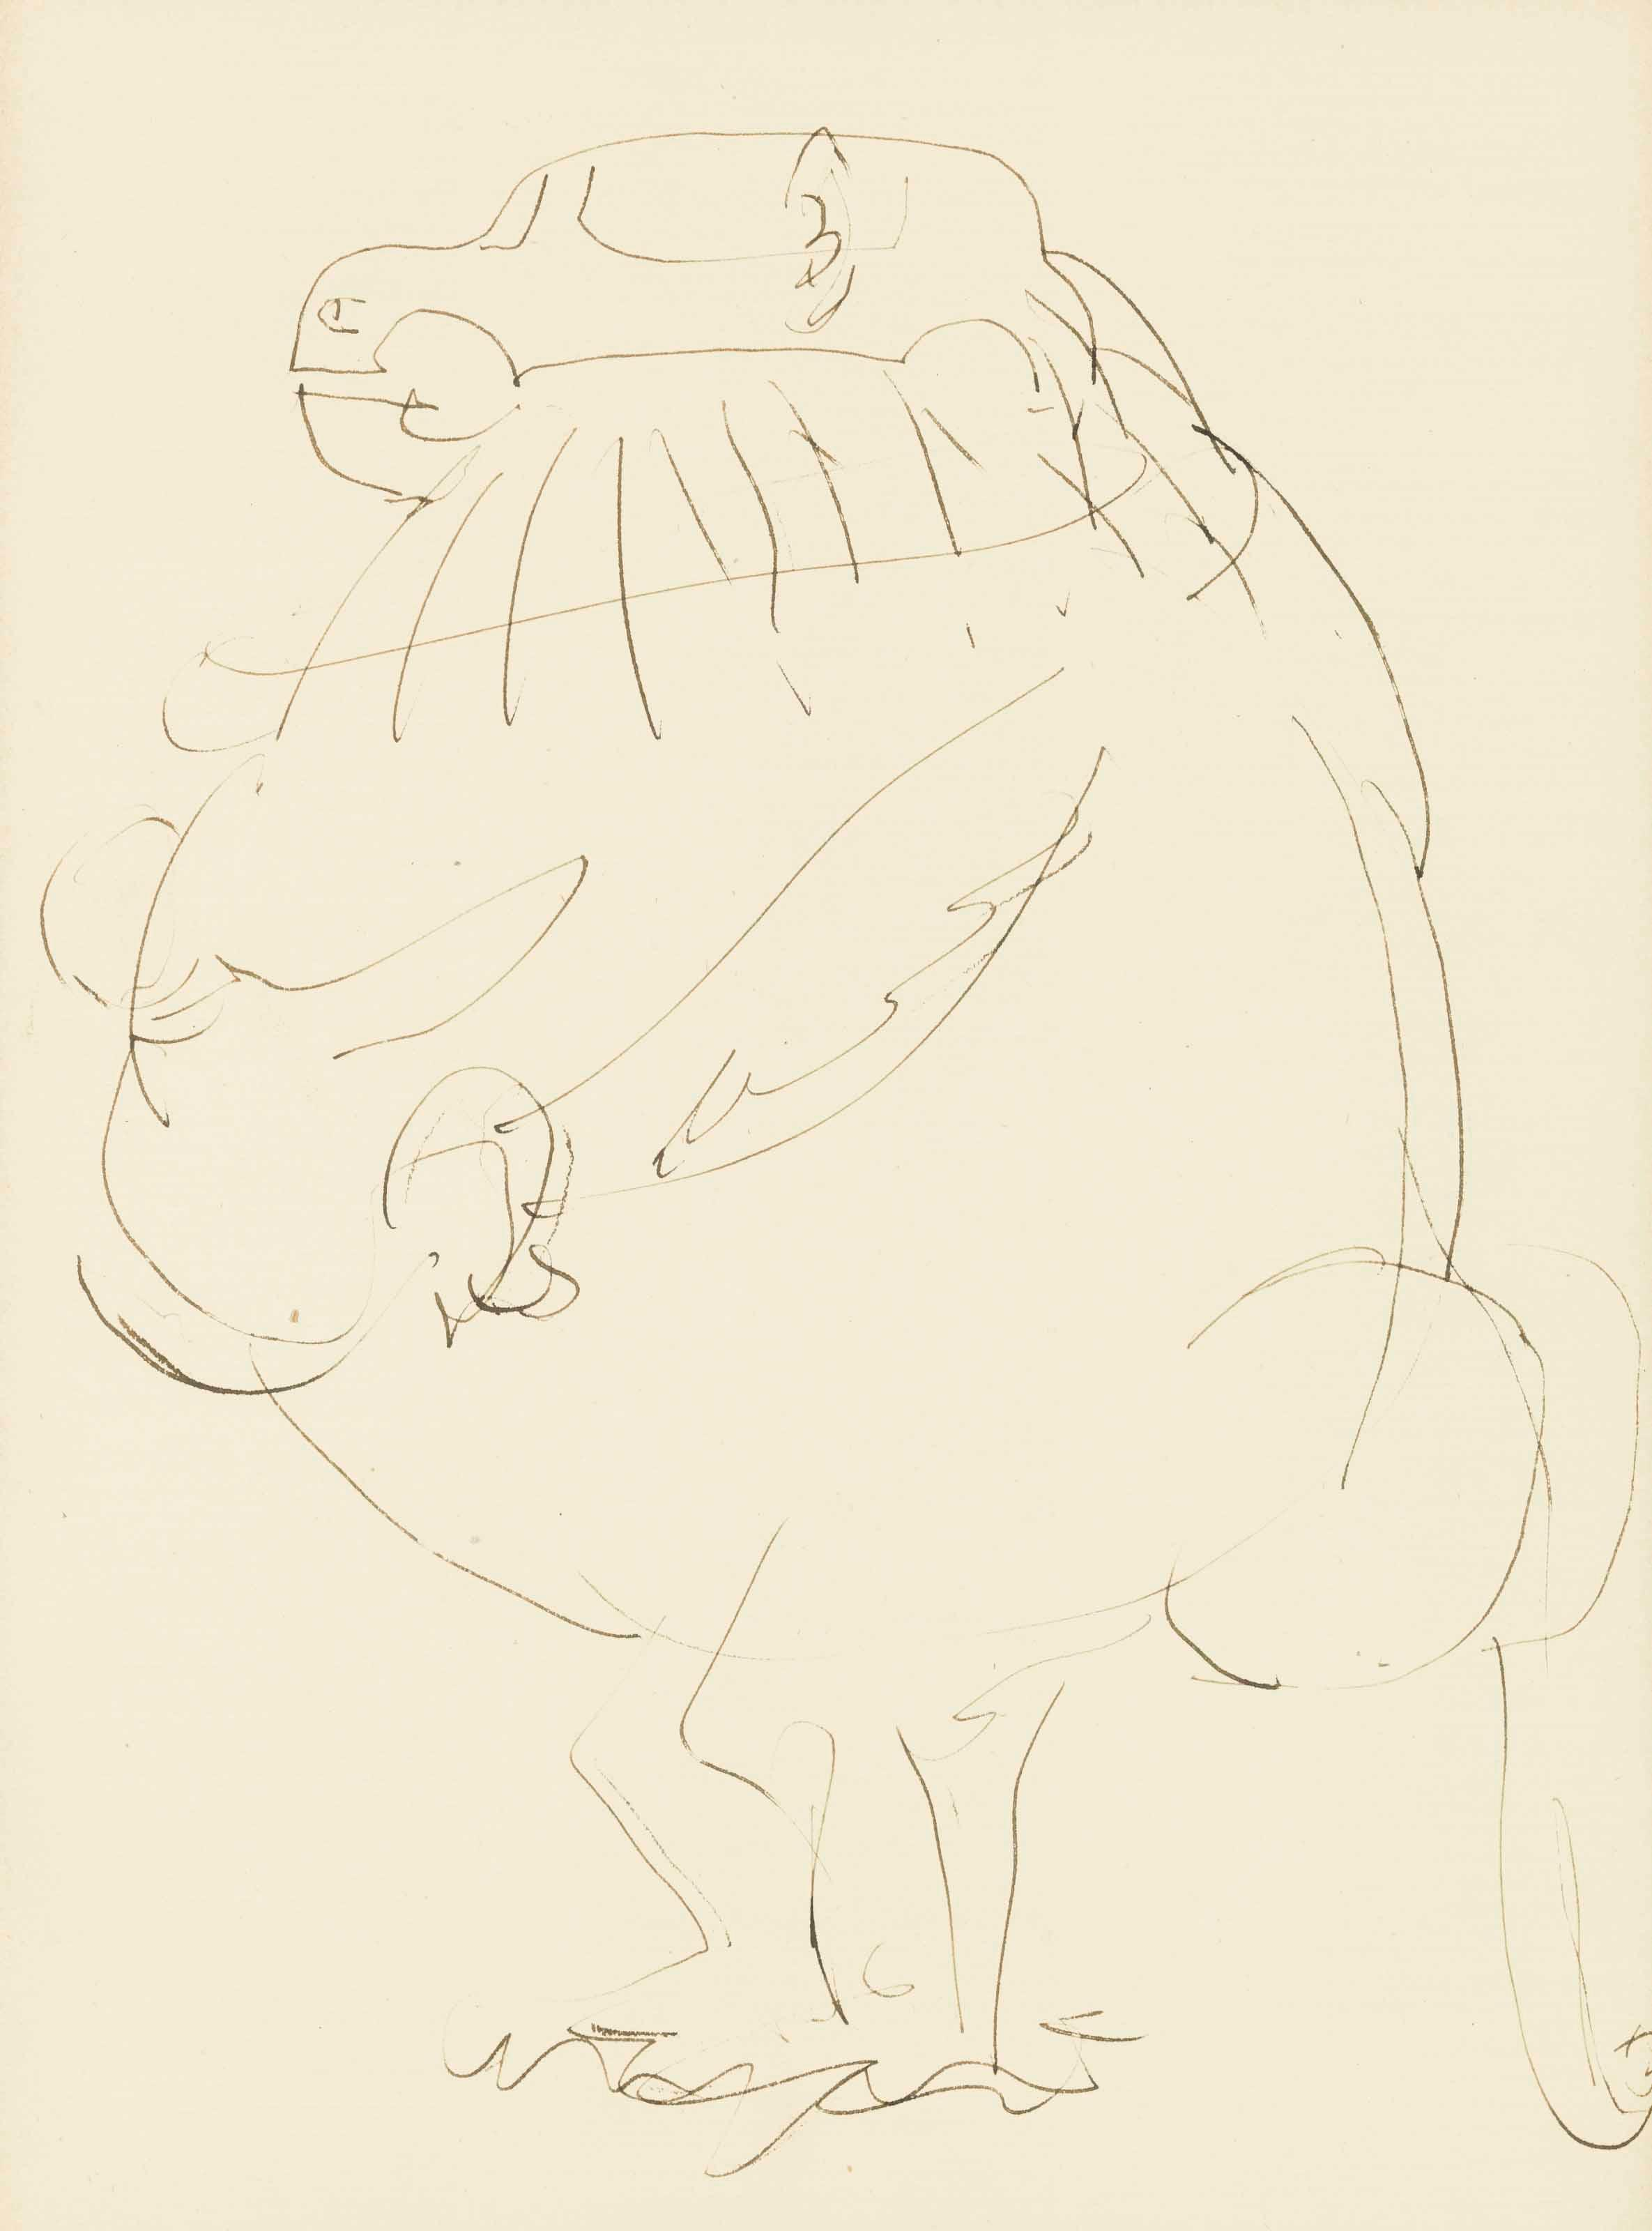 Le Babouin by Pablo Picasso